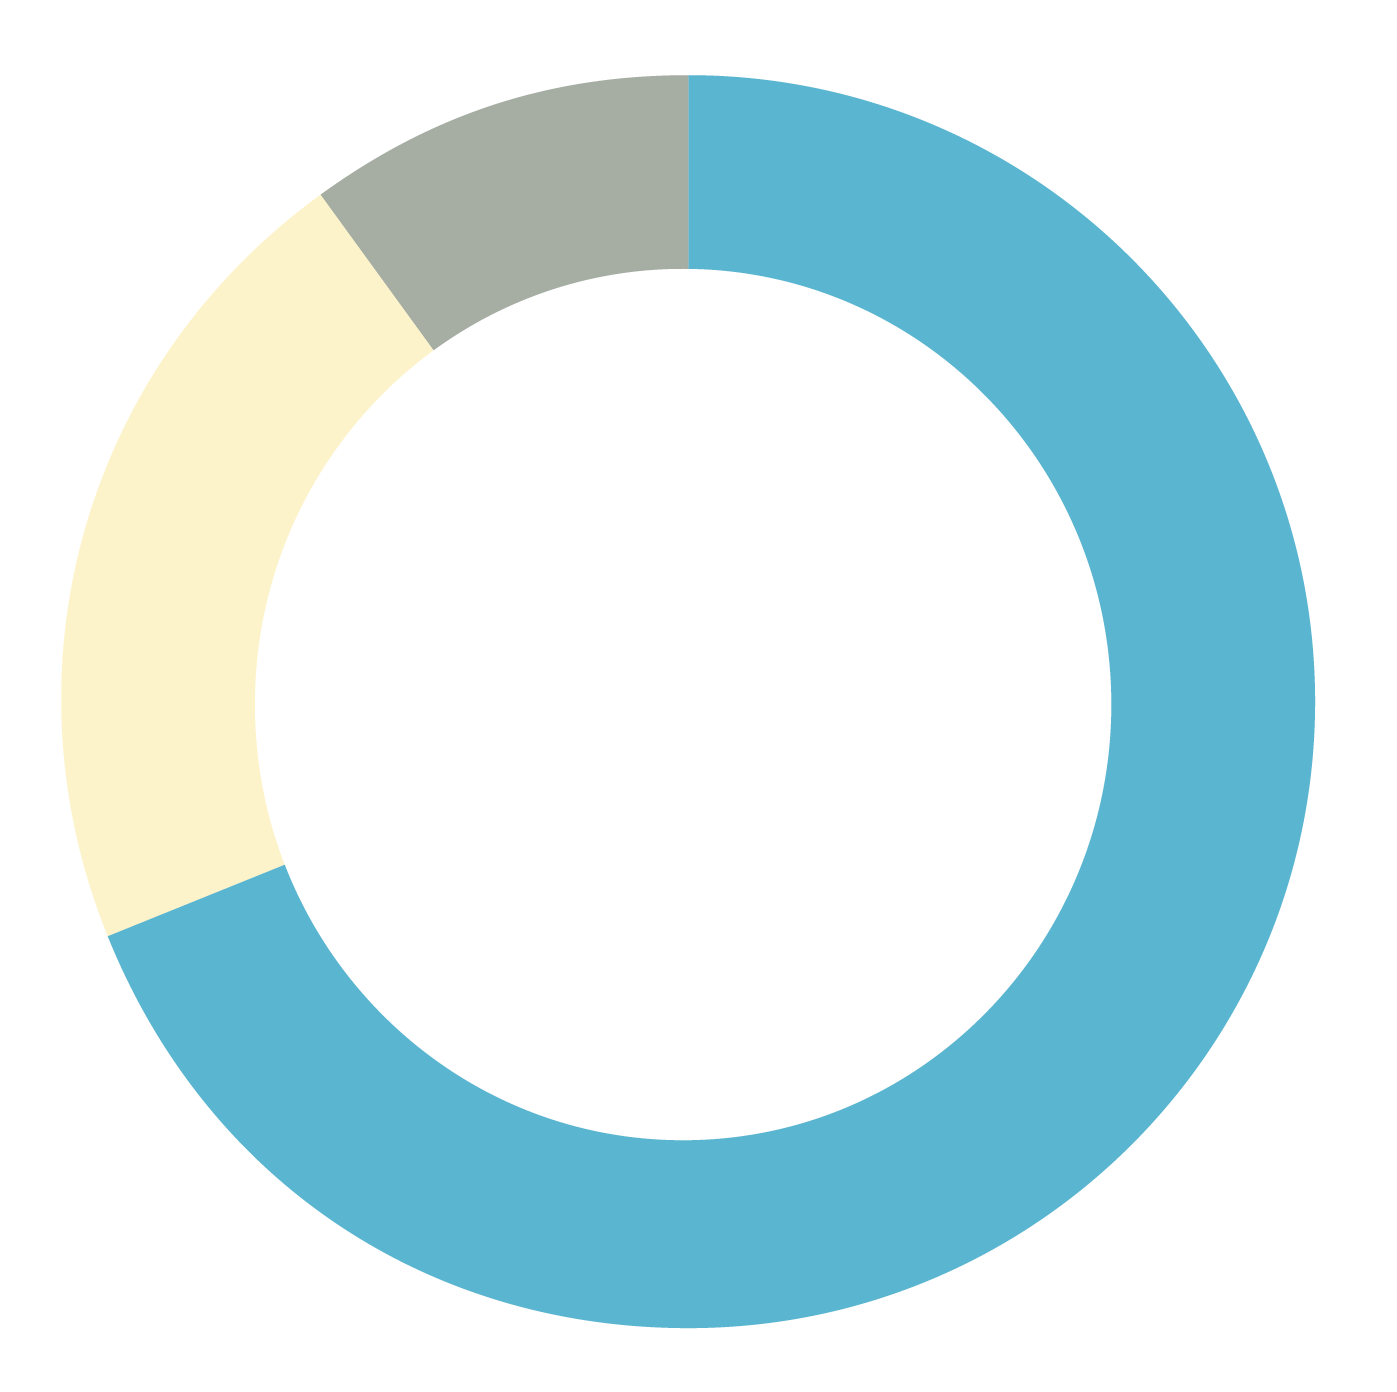 Pie Charts copy.png